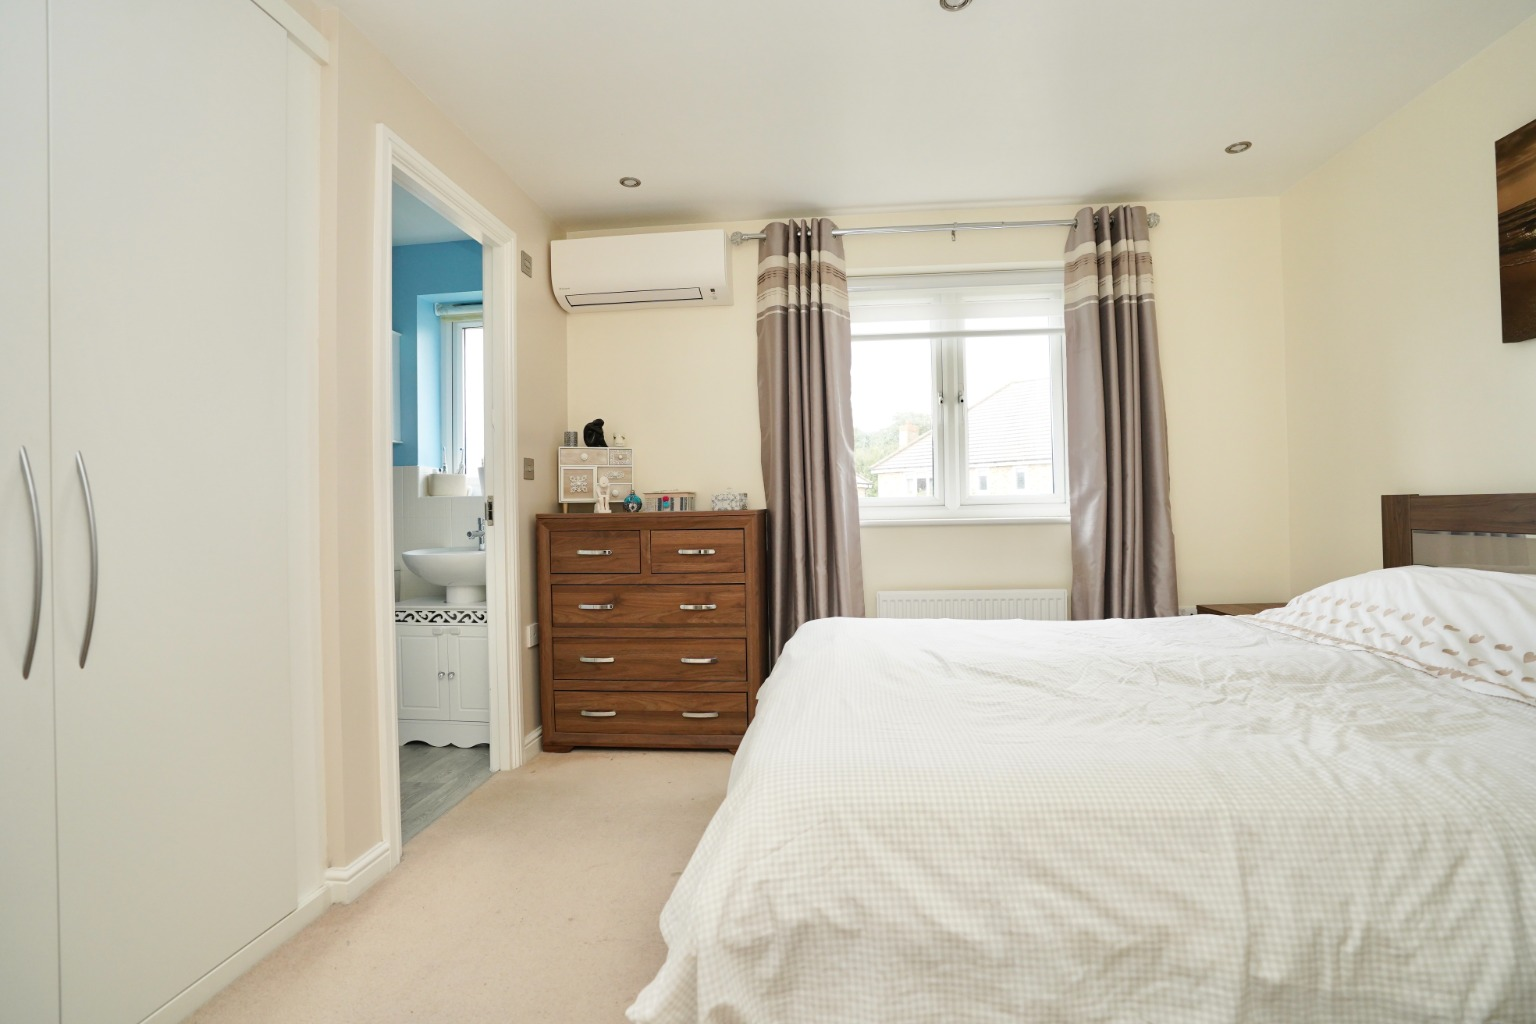 3 bed end of terrace house for sale in Stone Hill, Cambridgeshire 4